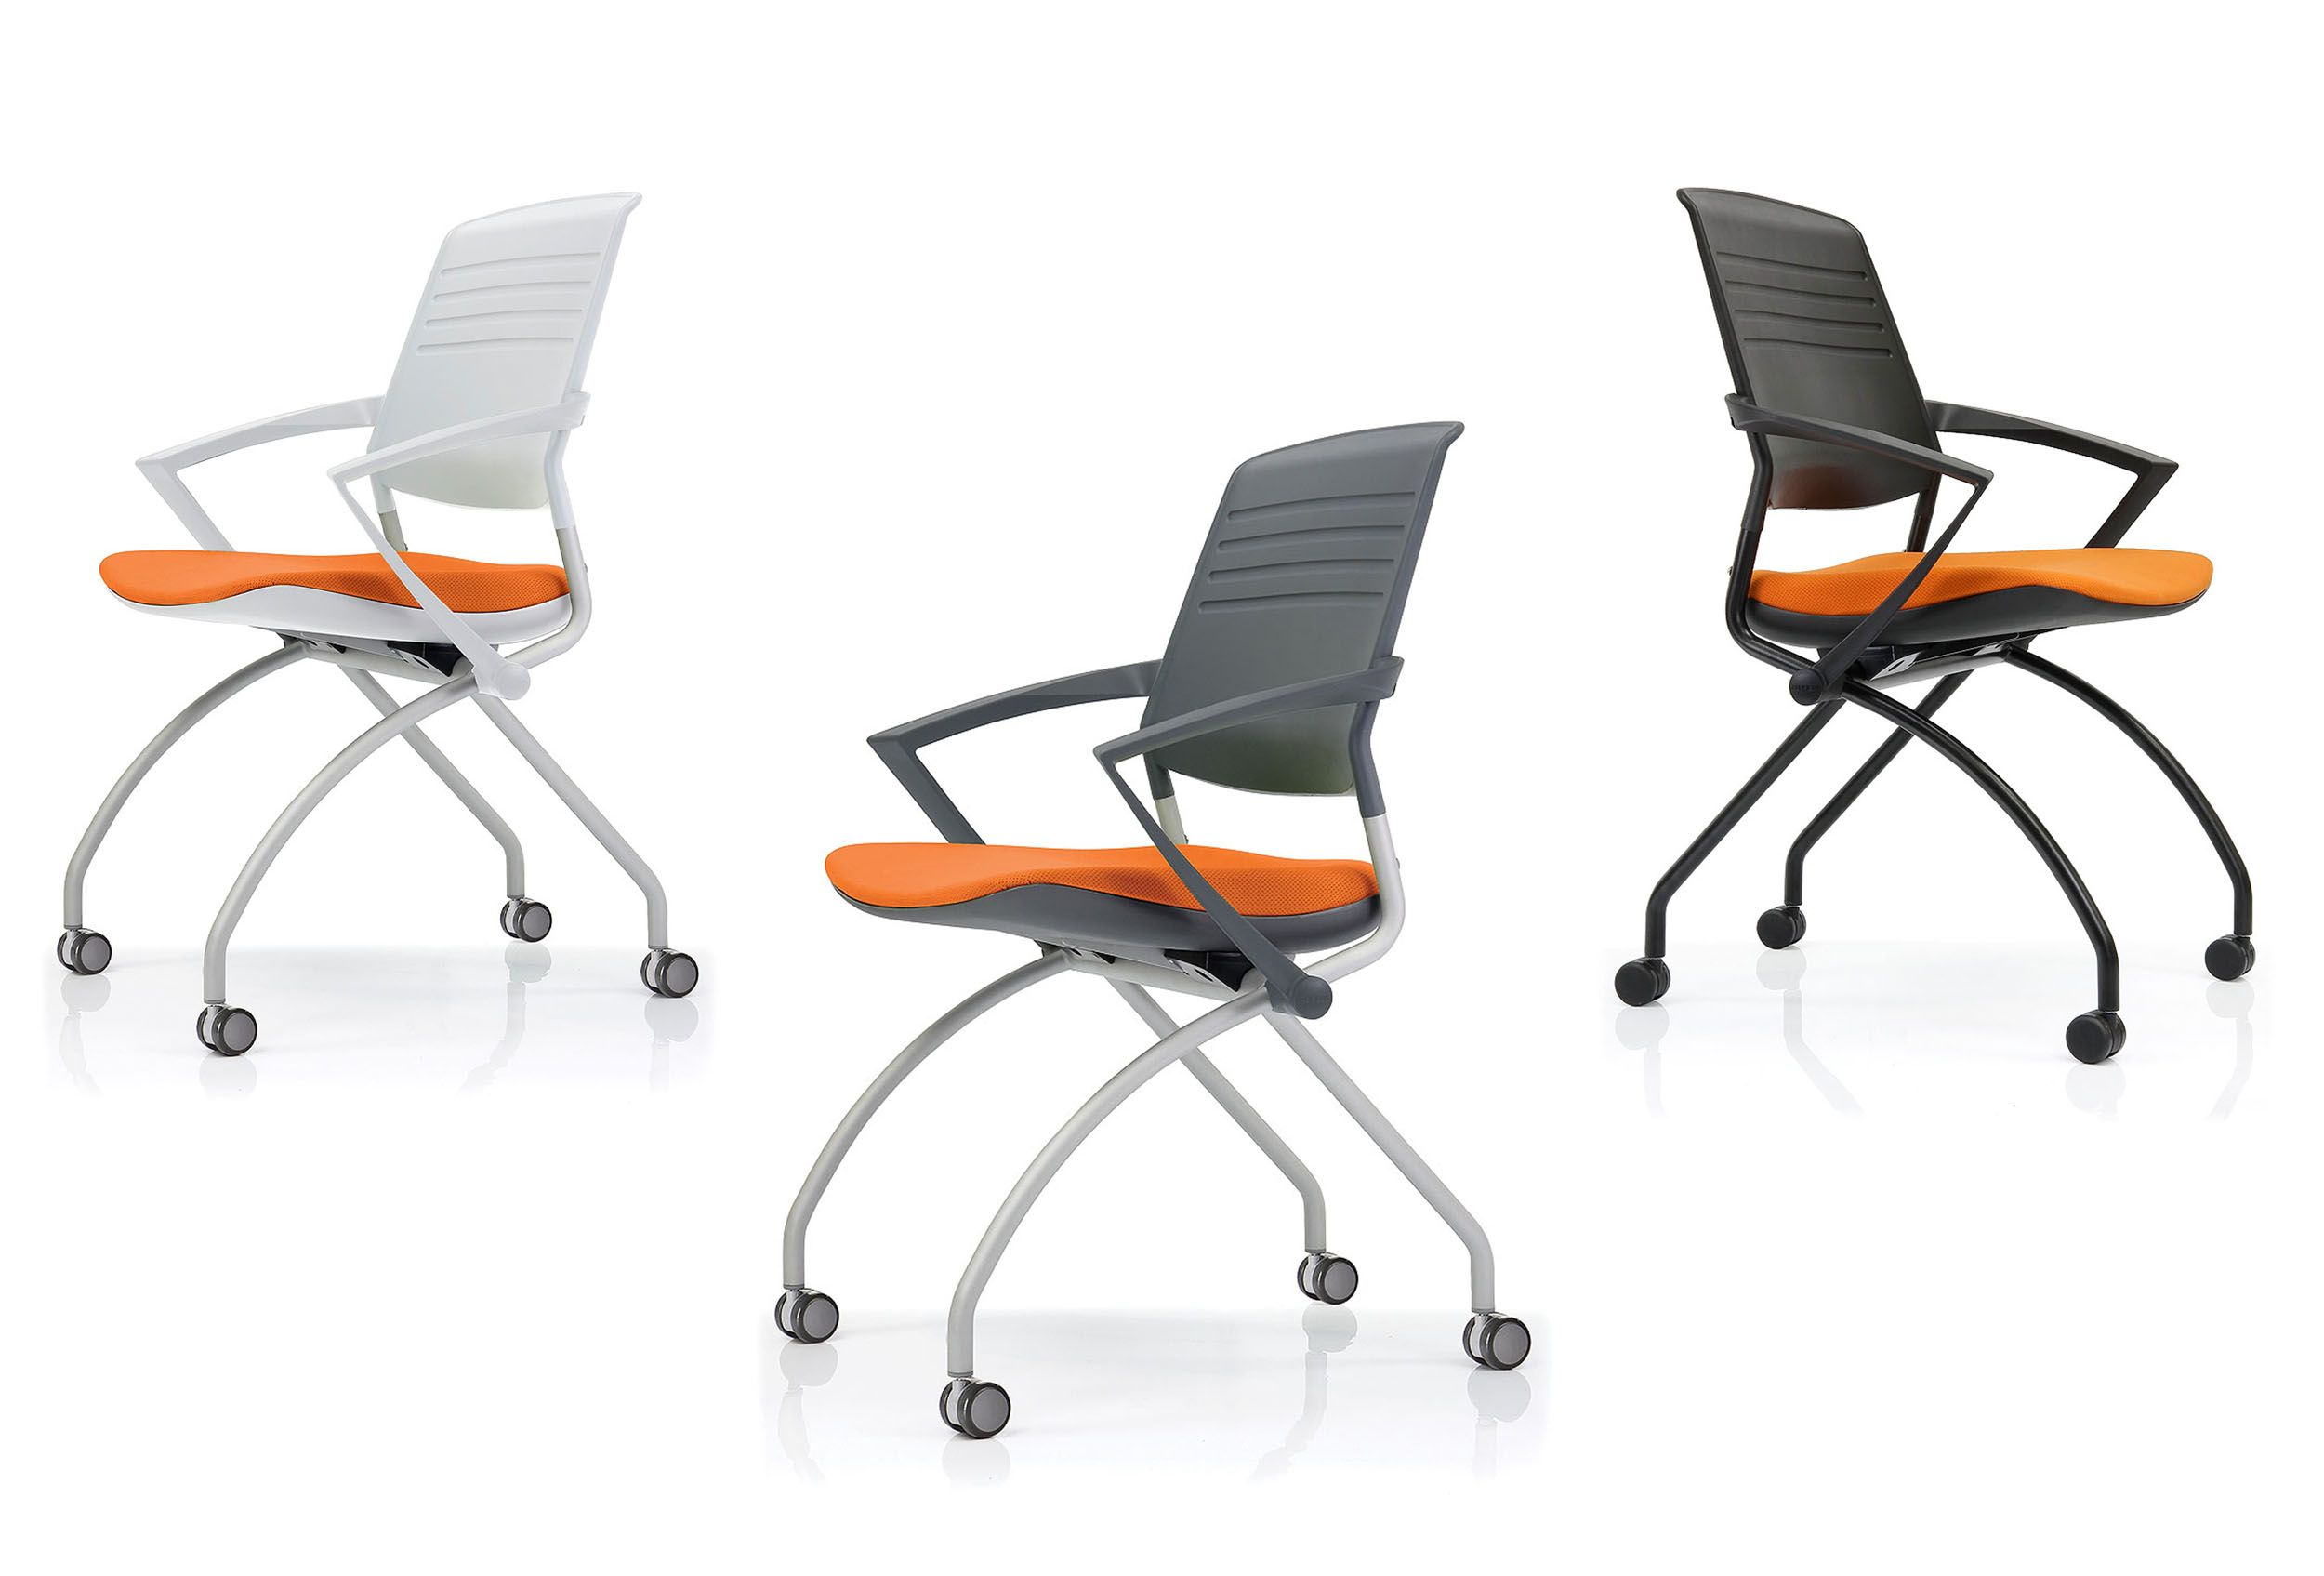 Muzo Switch chairs Folding and nesting portable chairs with ATB